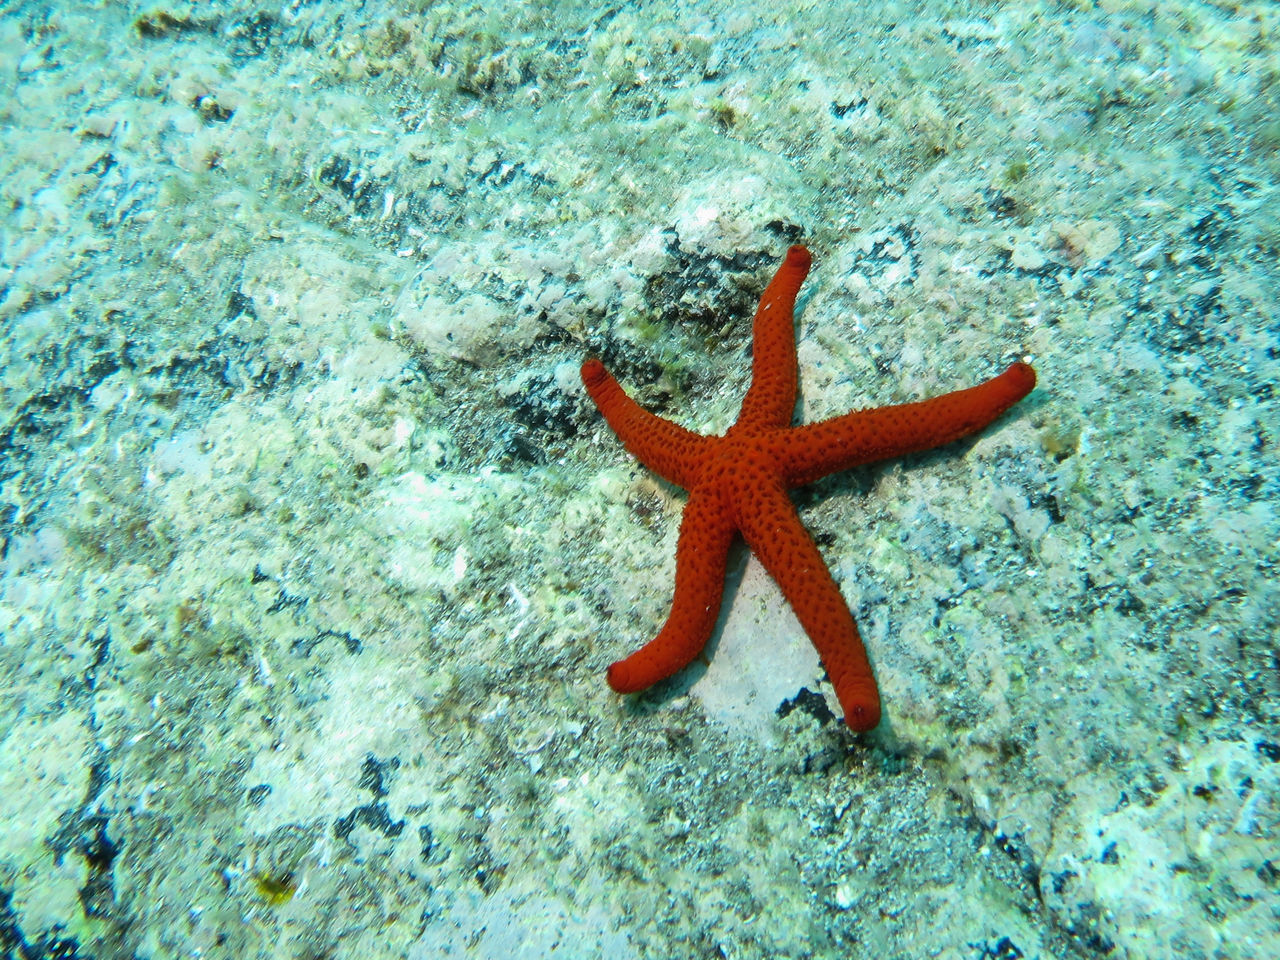 Animal Wildlife Aquatic Life Beauty In Nature Red Starfish Sea Seabed Starfish  Underwater Urban